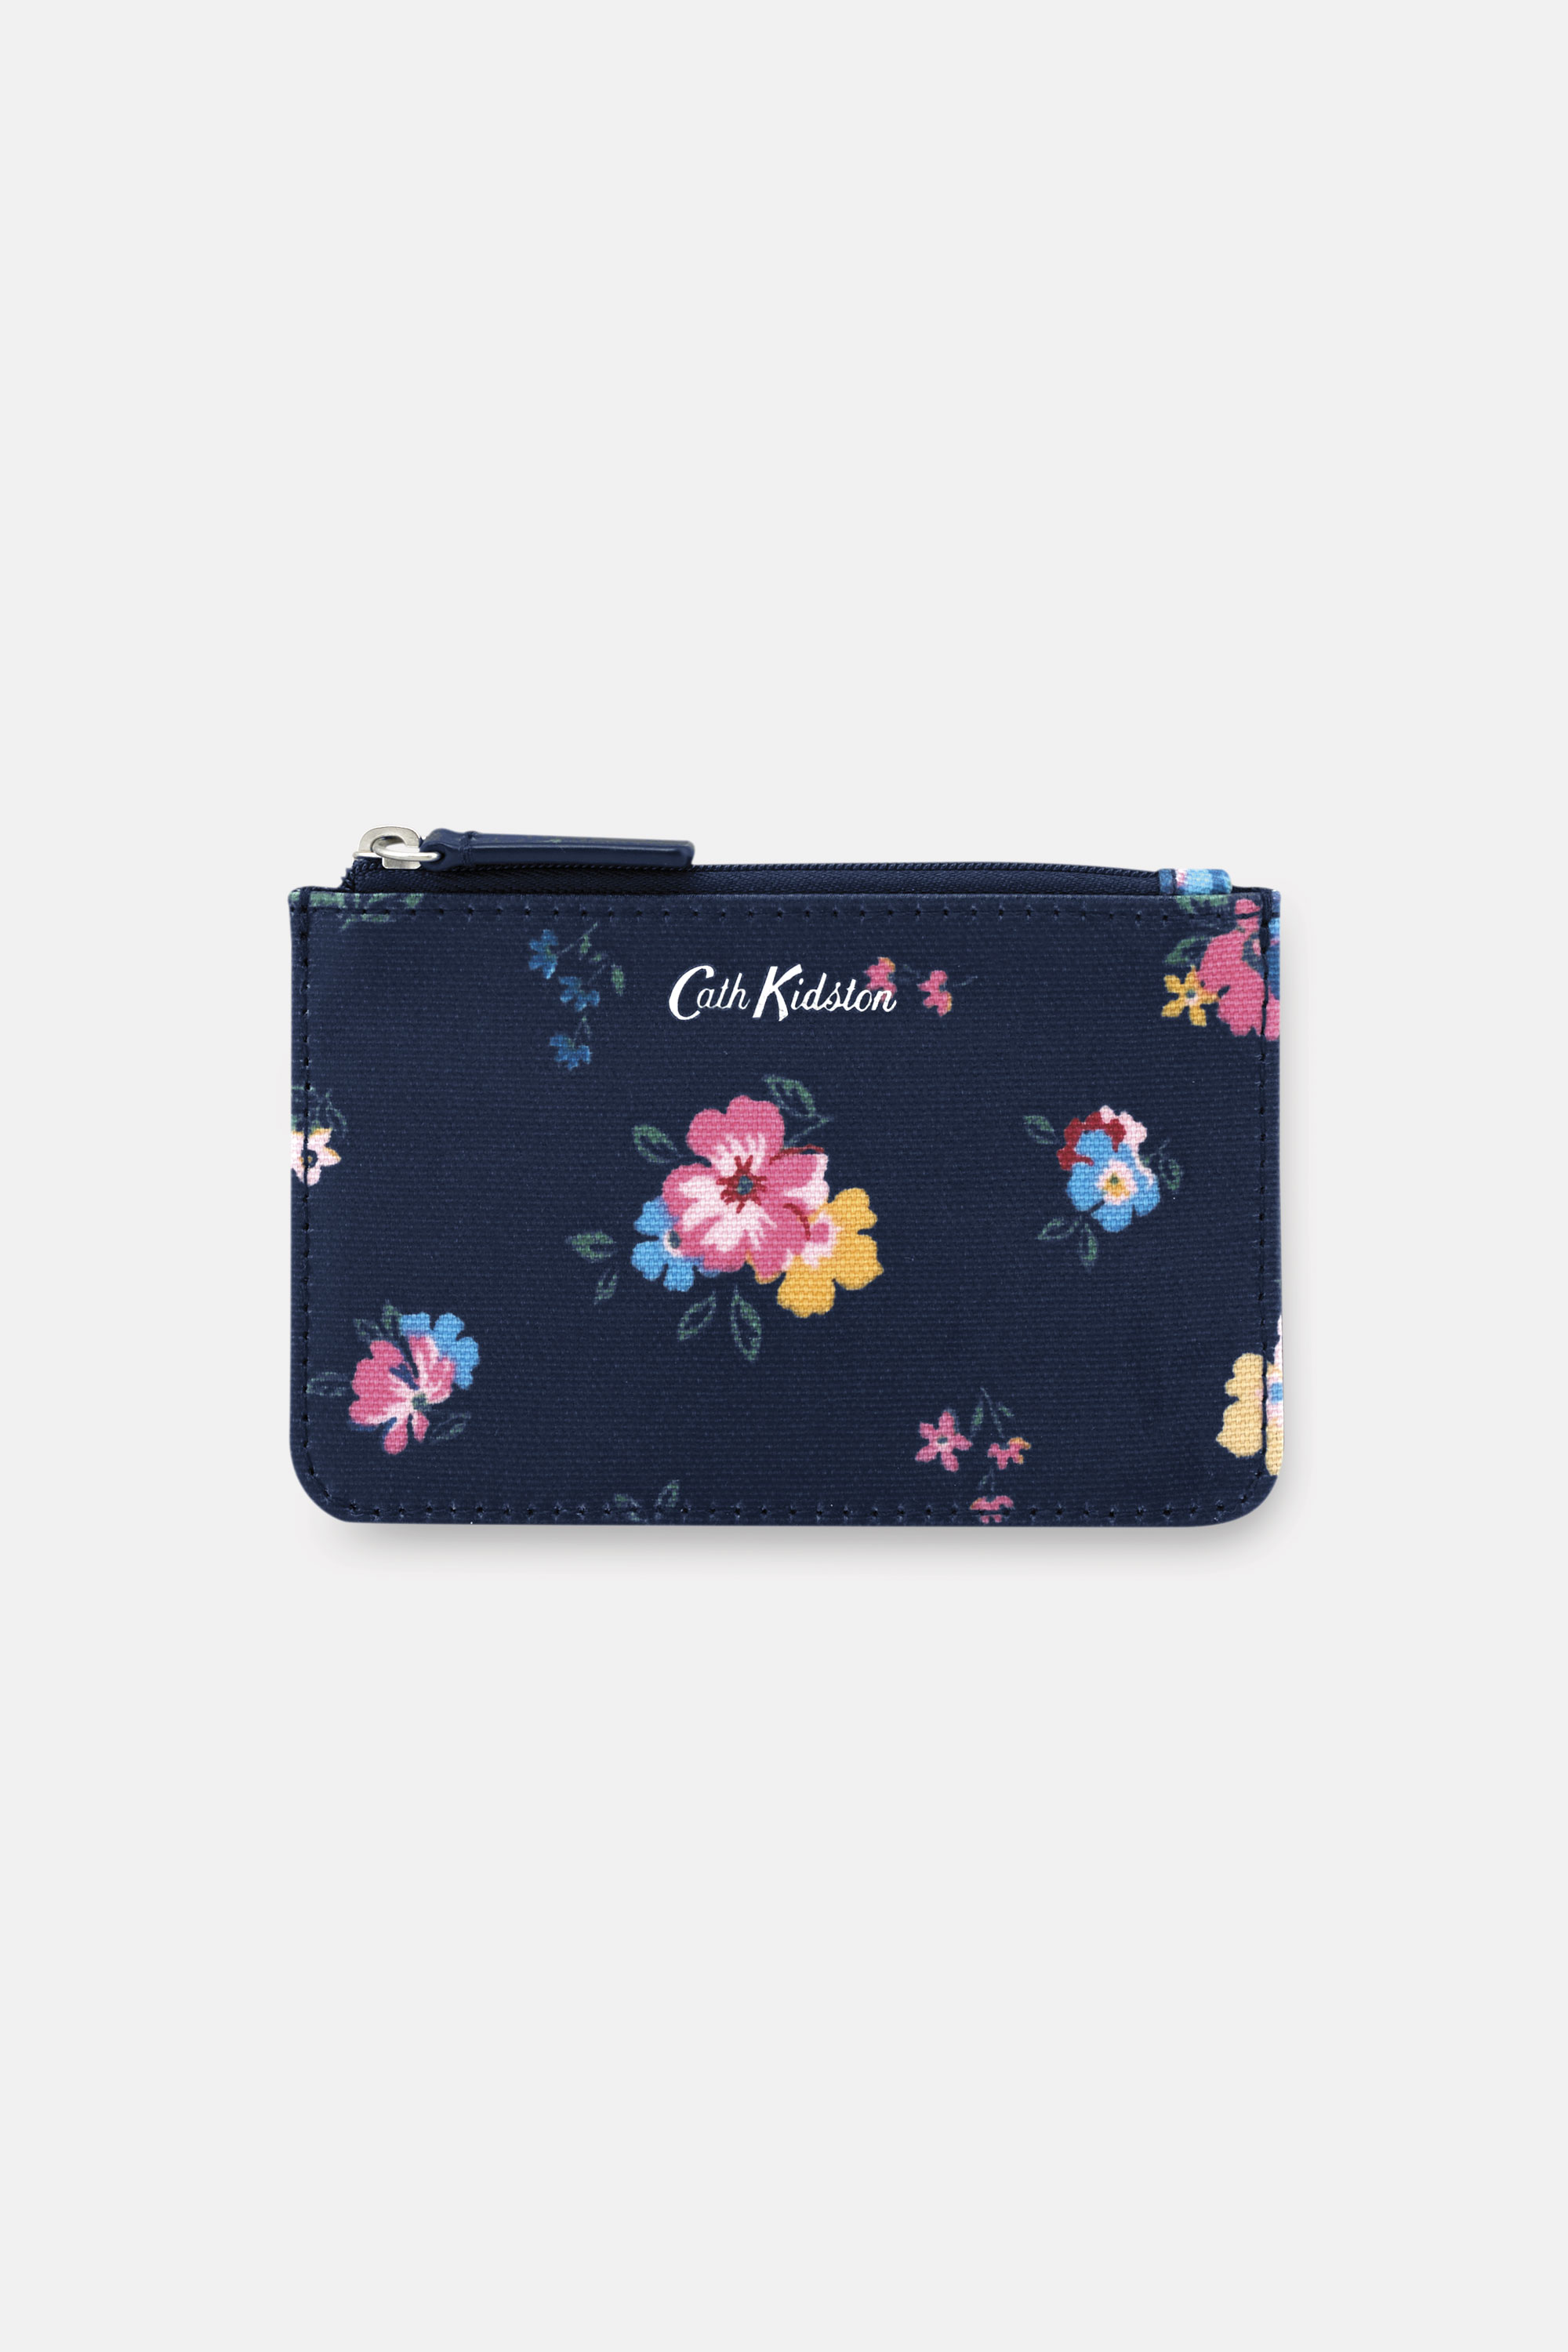 Cath Kidston Park Meadow Bunch Small Card and Coin Purse in Navy